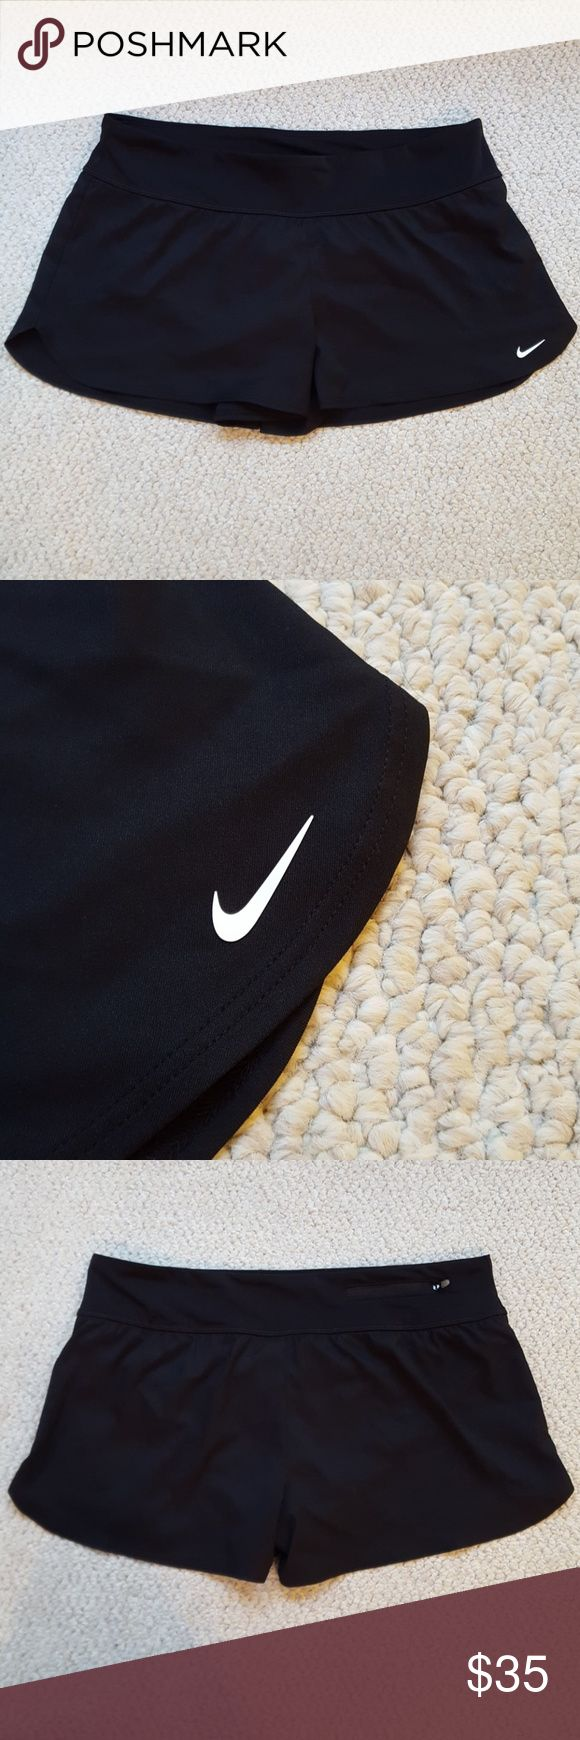 You soon! Nike swim shorts NWT Black Nike swim shorts! Perfect condition. Fully lined with nice zippered pocket in back see picture Nike Shorts